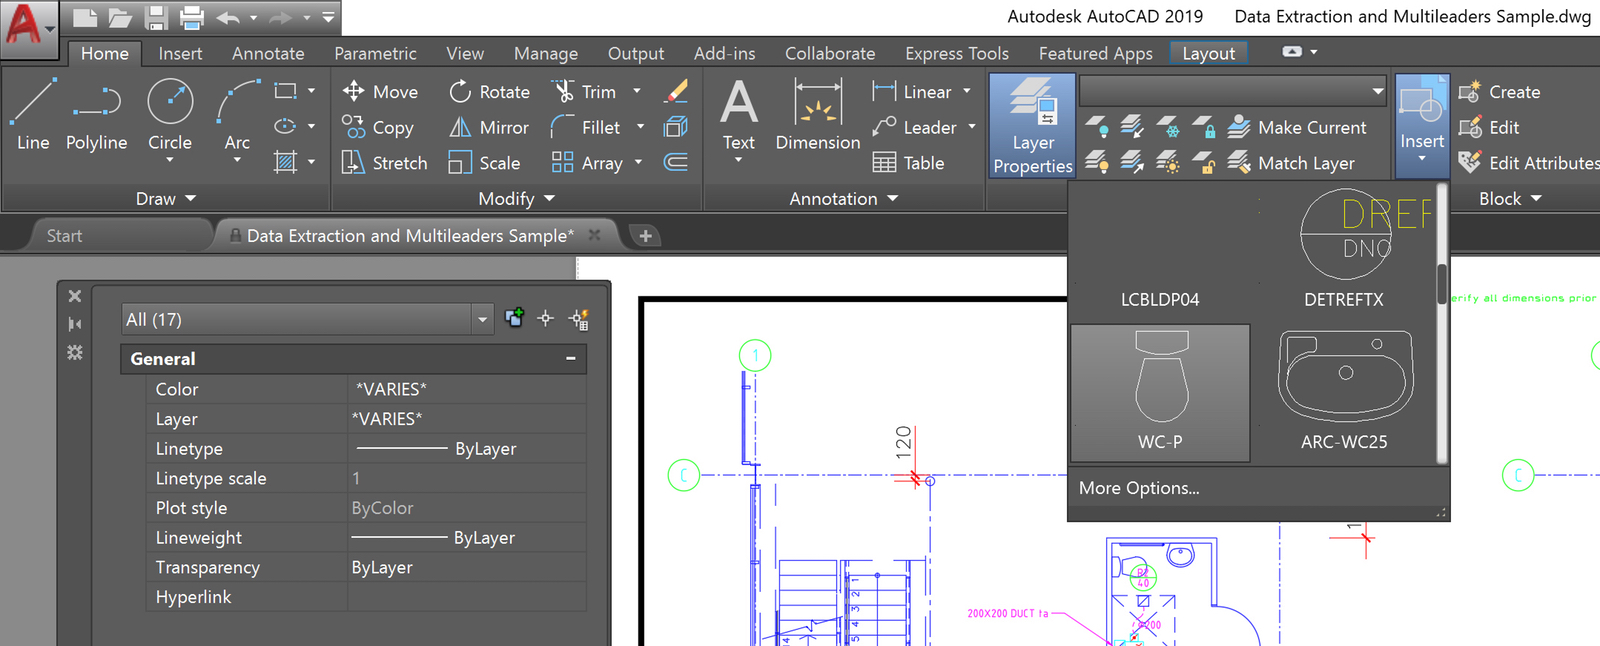 autocad 2019 icon refesh, flat design